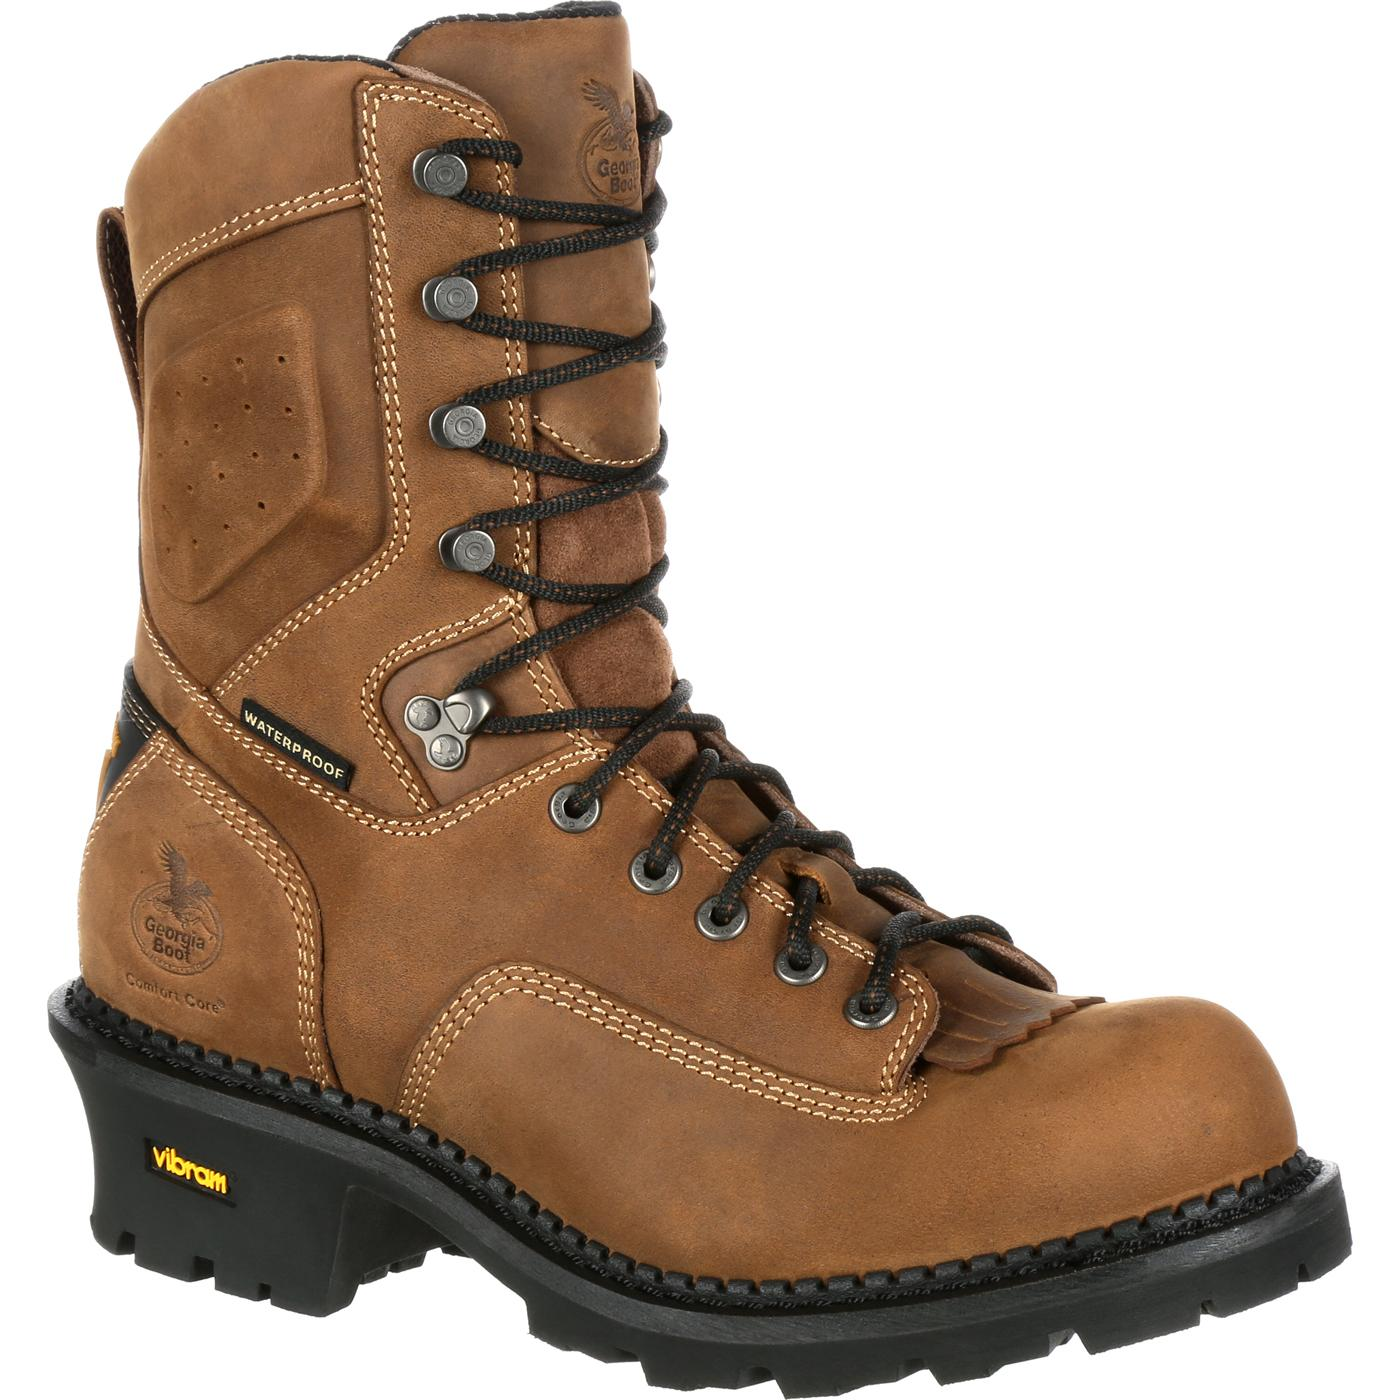 Georgia Comfort Core Logger Composite Composite Composite Toe Waterproof Work Boot Brown GB00097 09d56d